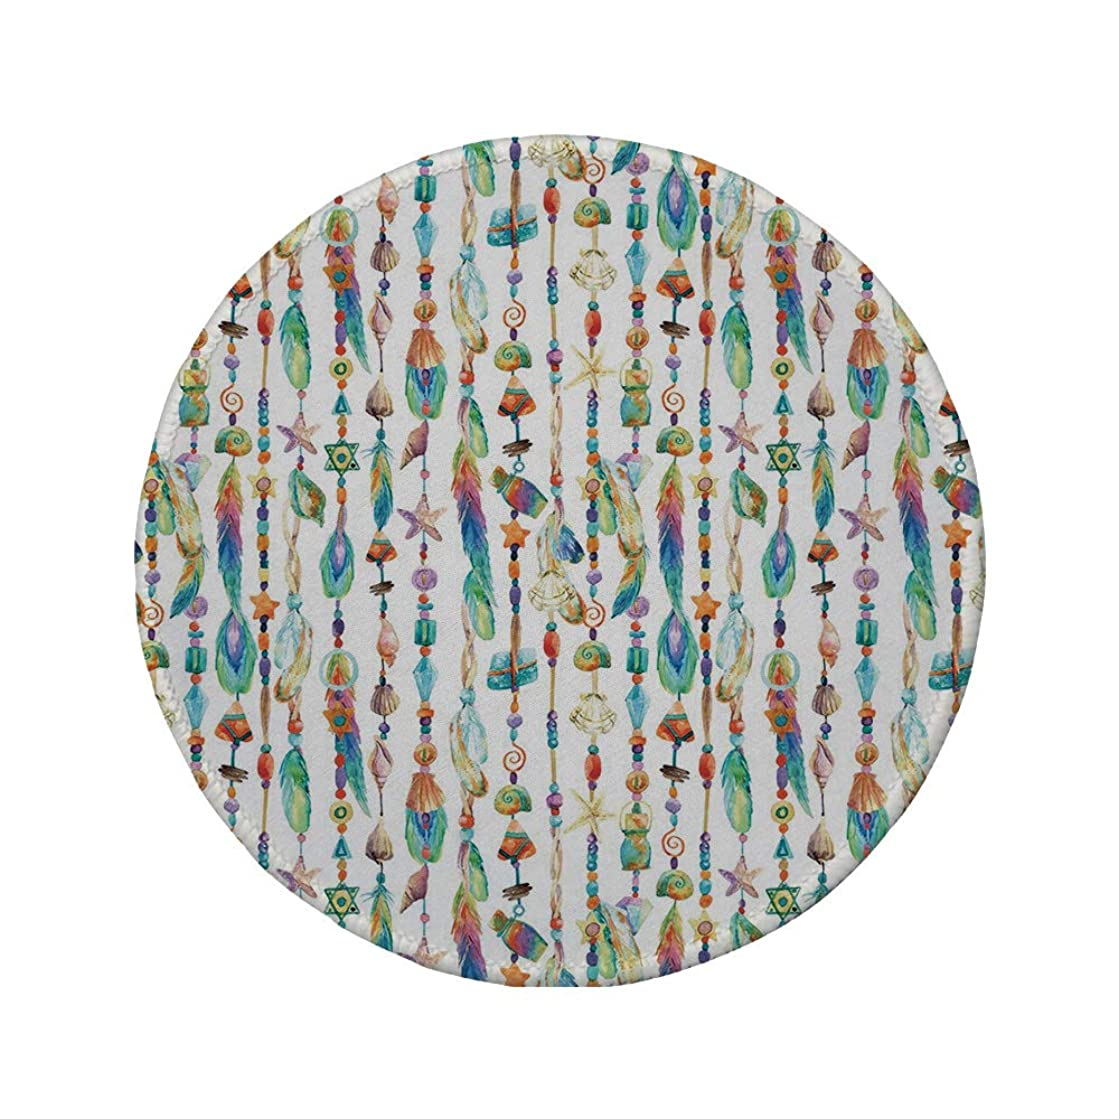 Non-Slip Rubber Round Mouse Pad,Feather,Watercolor Style Figures with Sea Shells Nautical Boho Style Chains Pendant Pattern,Multicolor,11.8